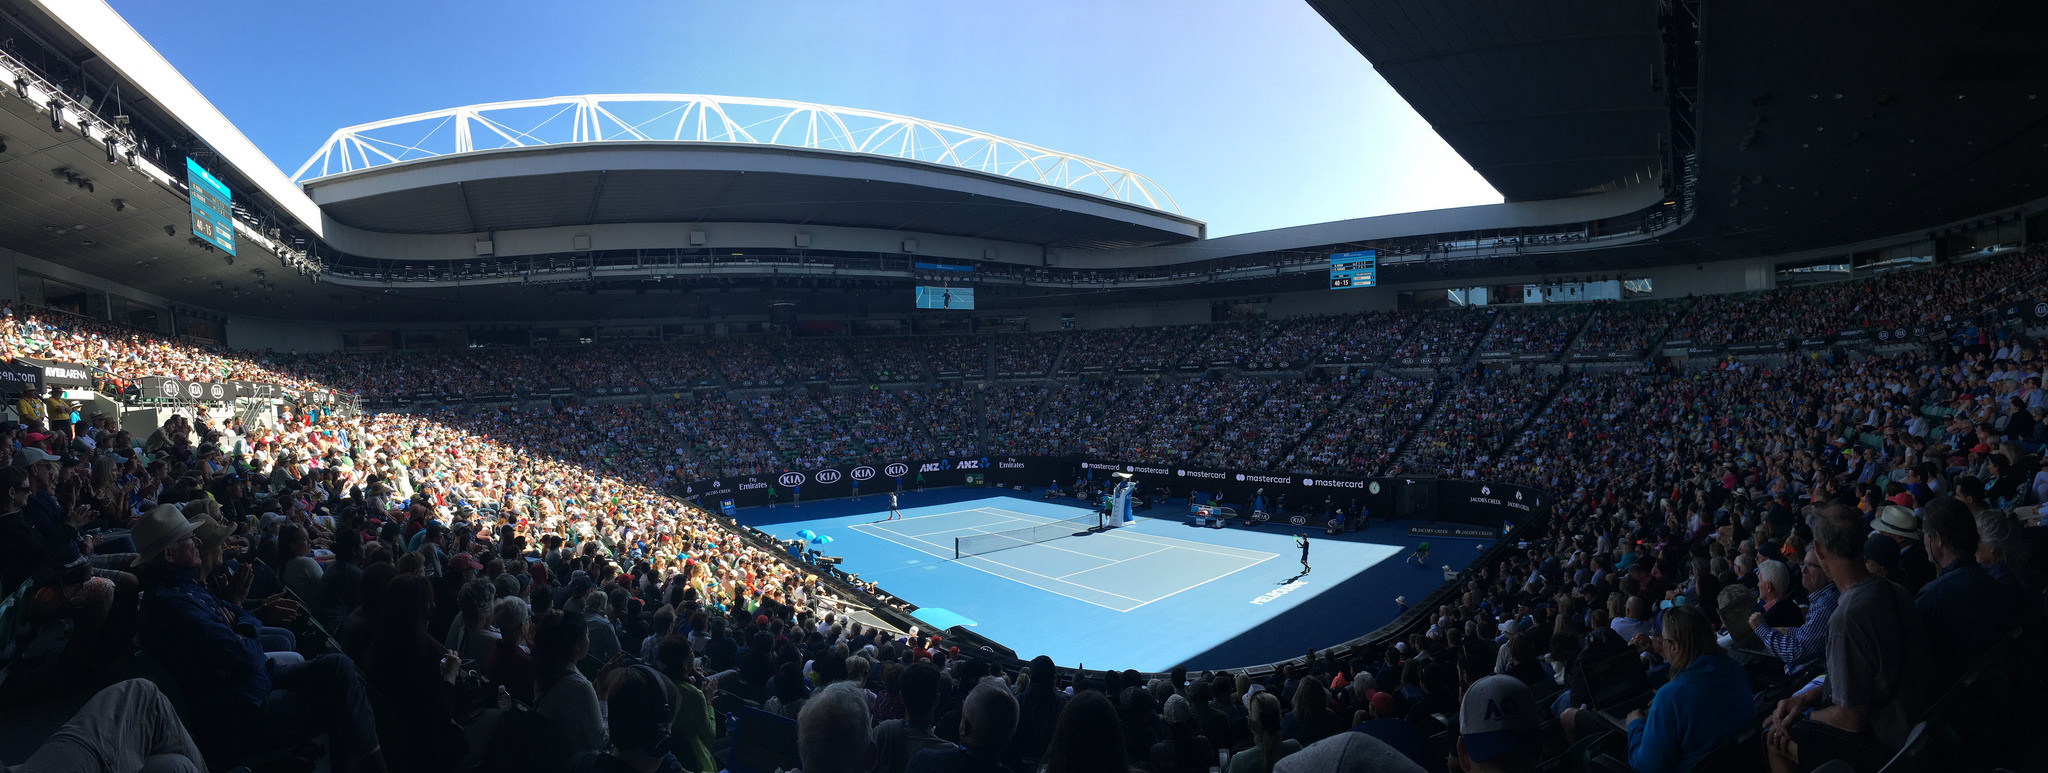 Svensk succe klar for australian open